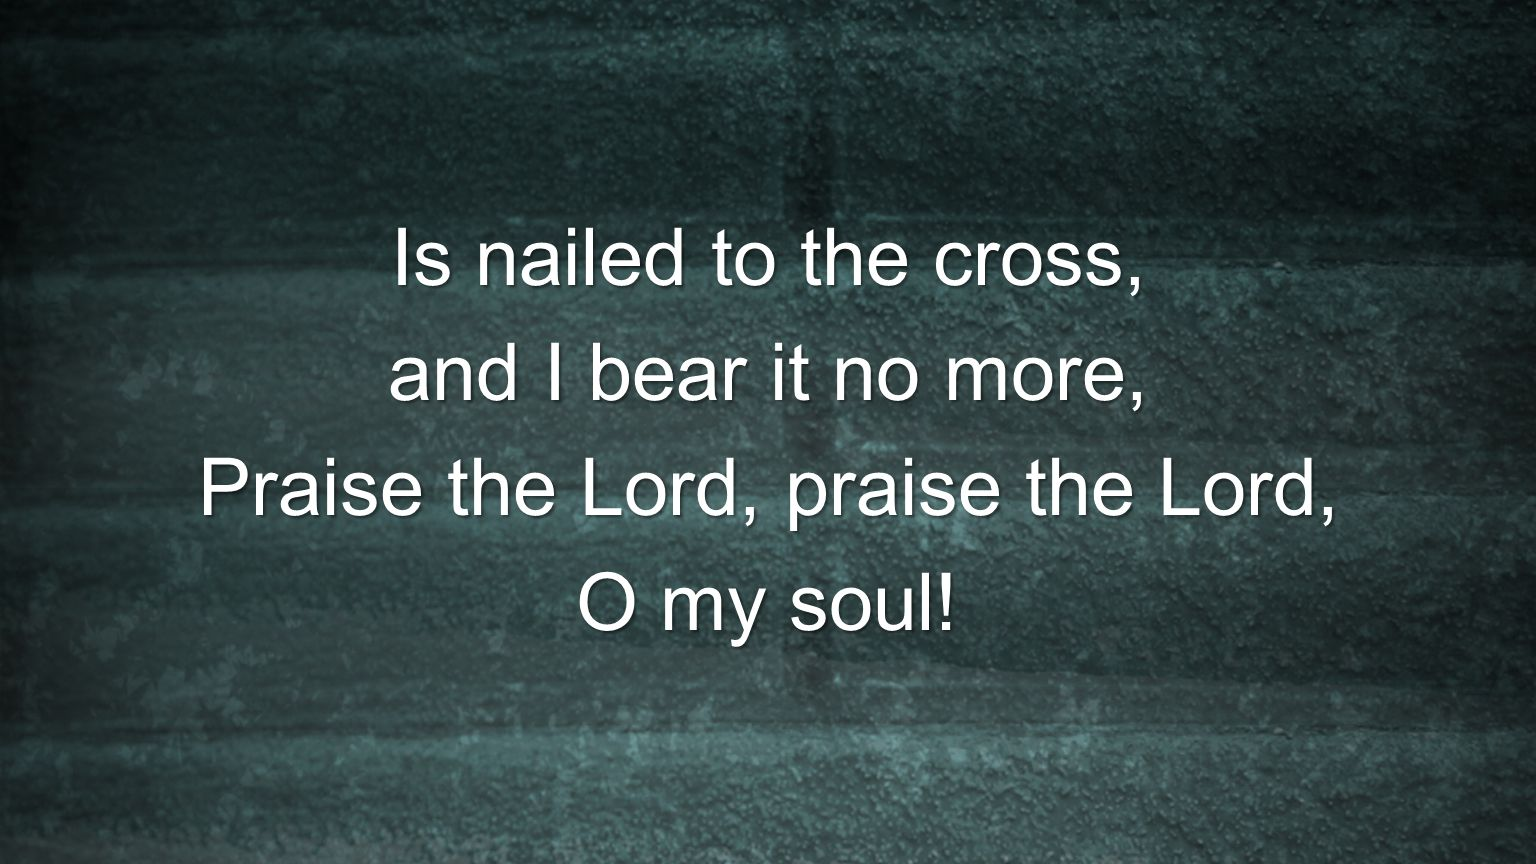 Is nailed to the cross, and I bear it no more, Praise the Lord, praise the Lord, O my soul!